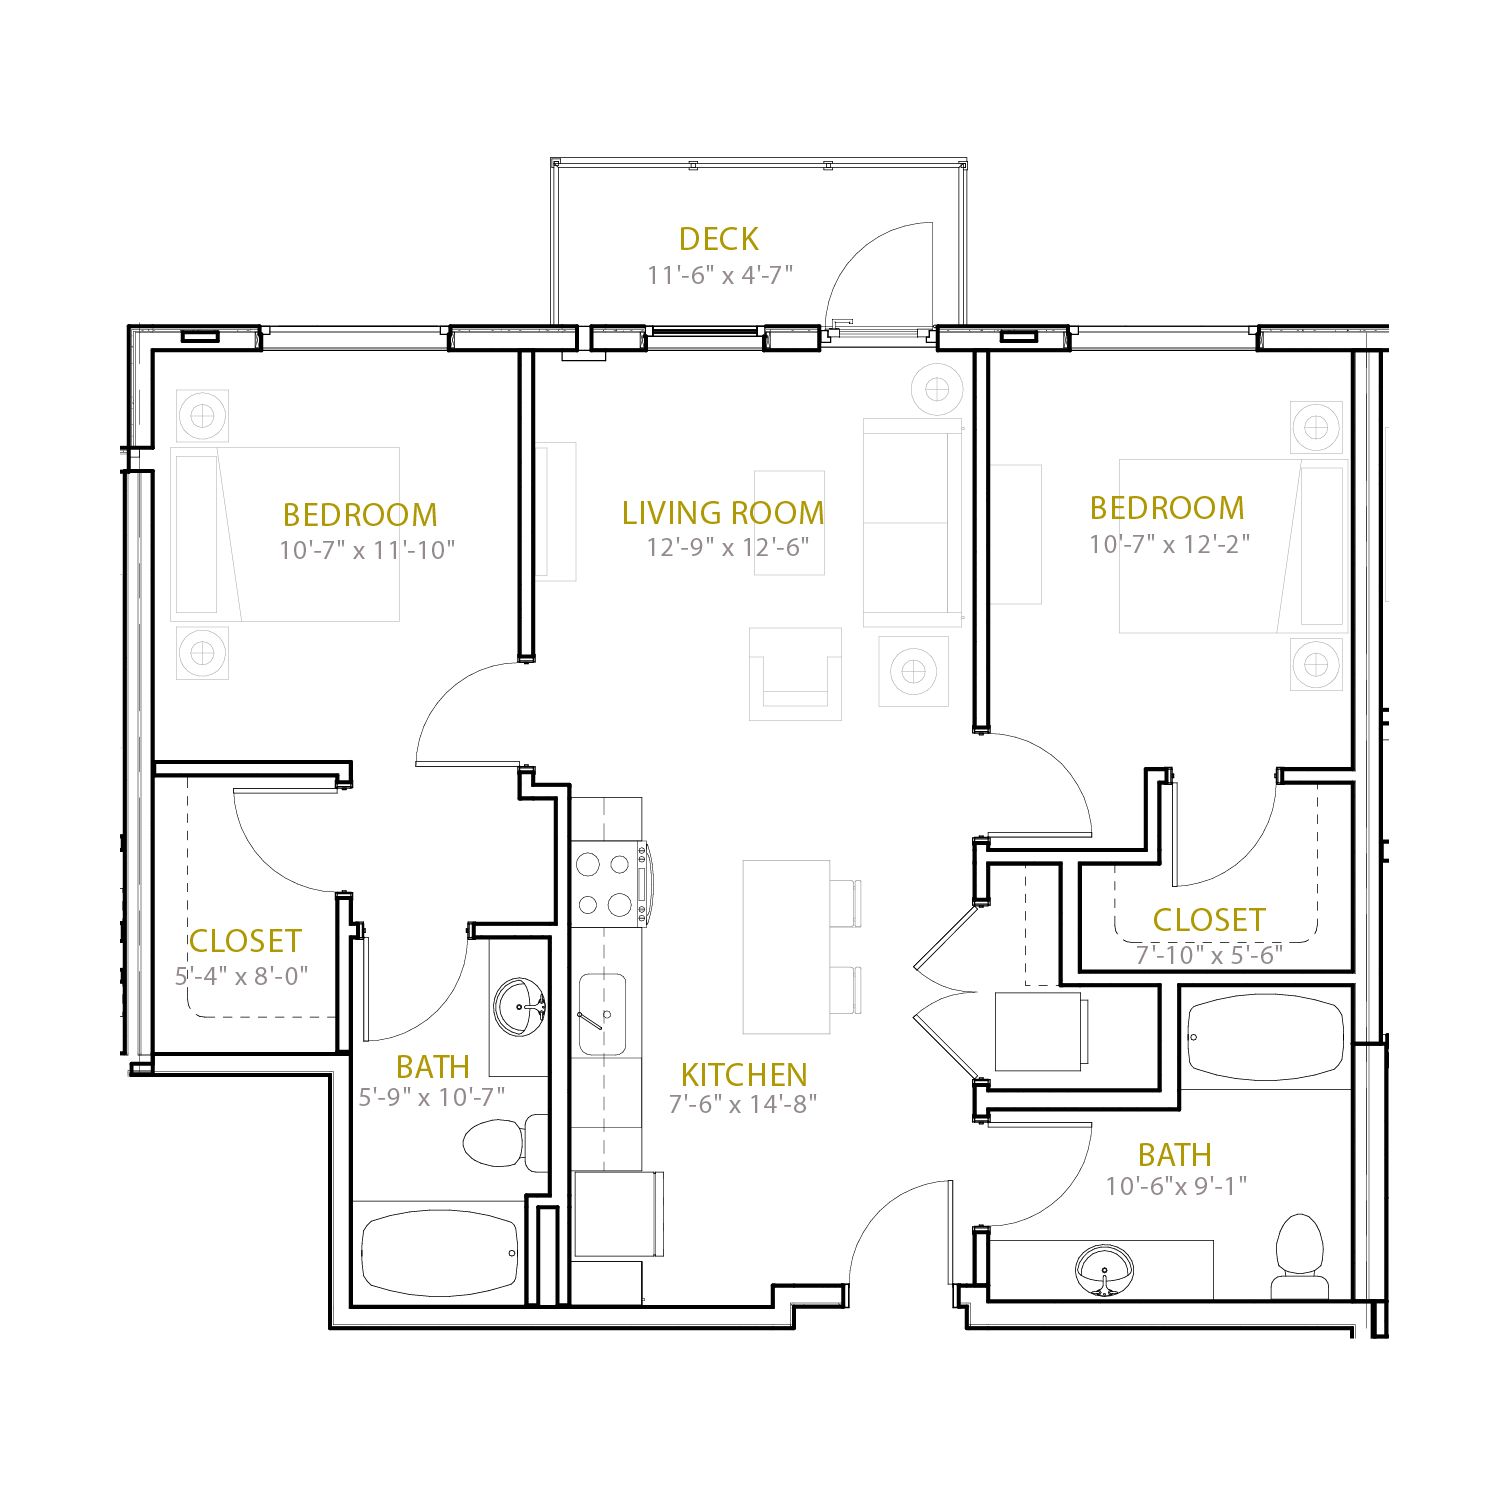 C Twelve floor plan diagram. Two bedrooms, two bathrooms, an open kitchen and living area, and a deck.